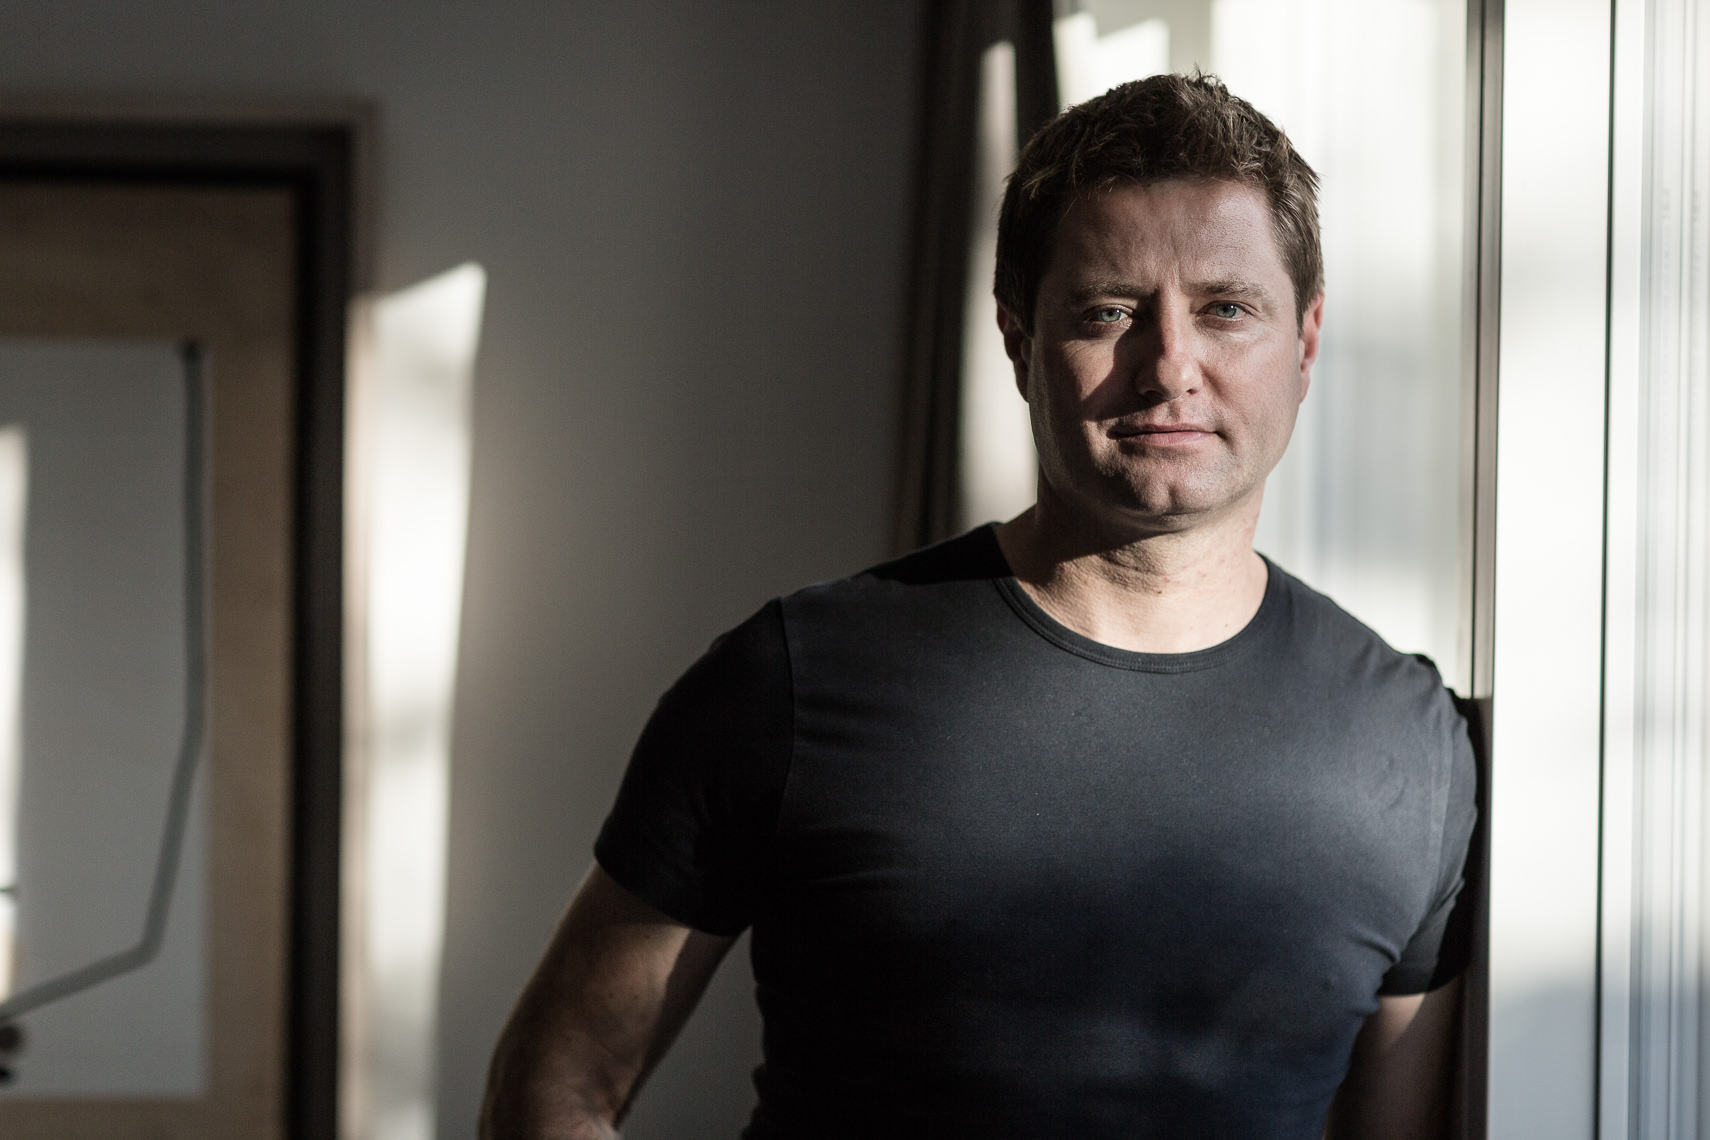 Construction George Clarke